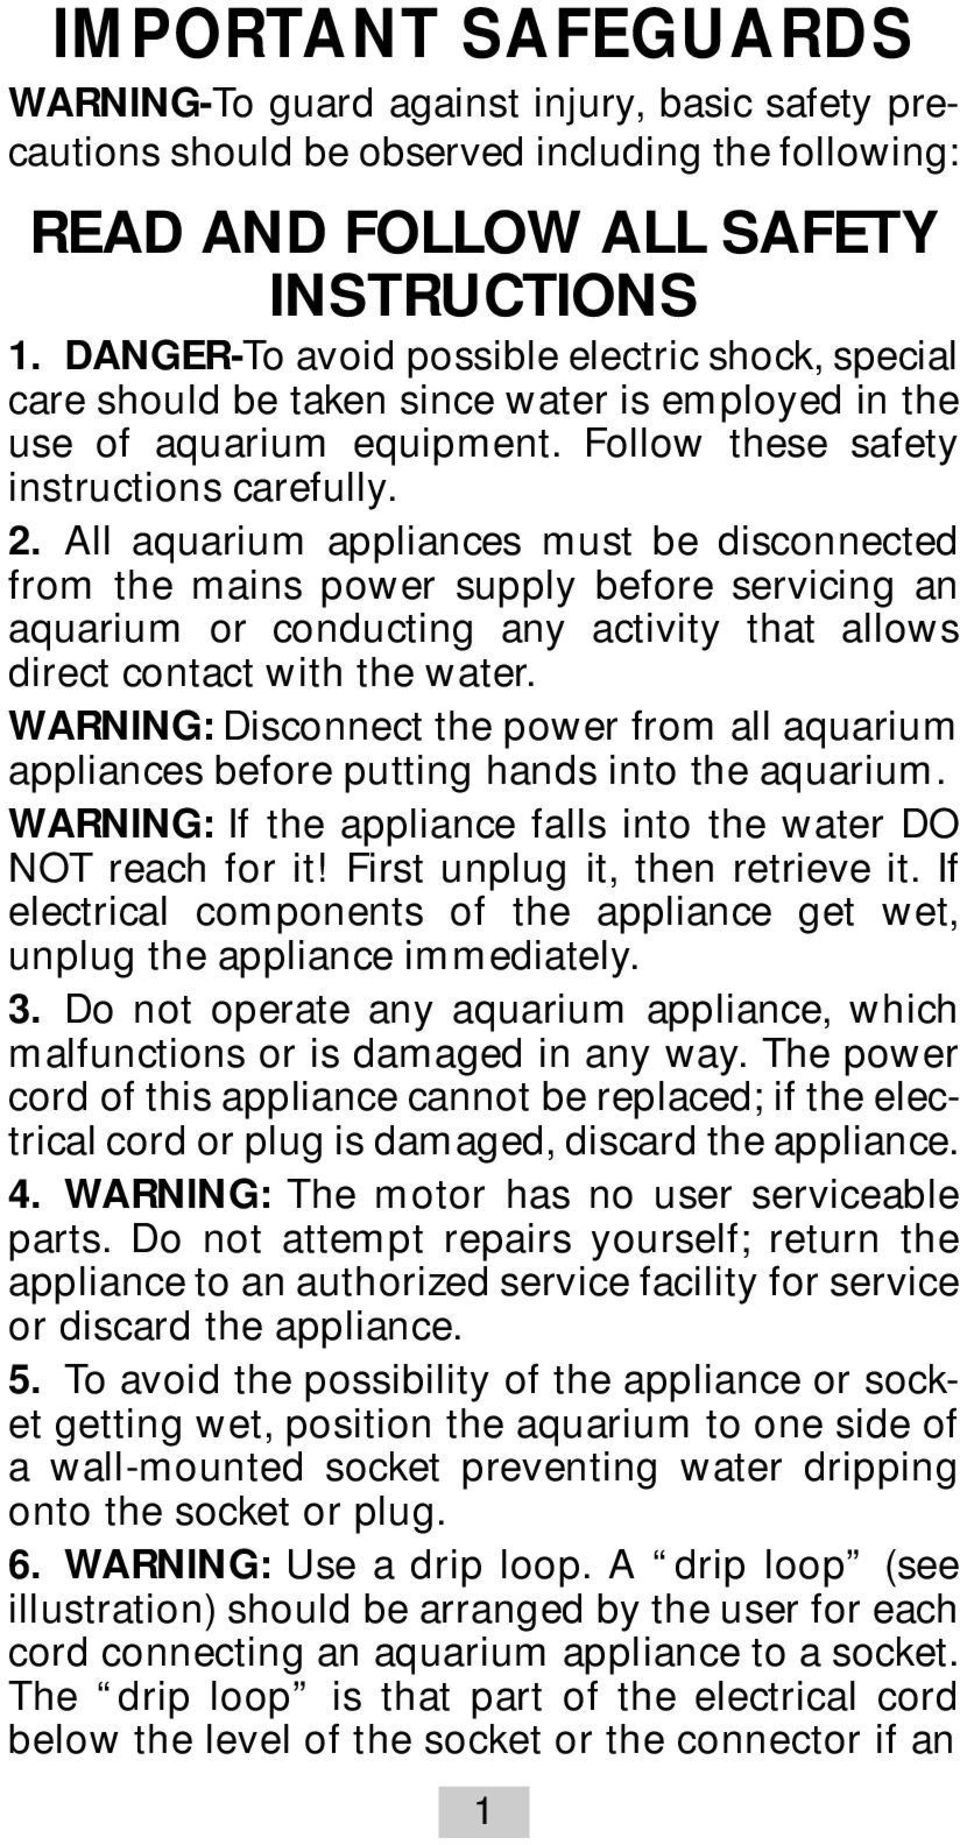 All aquarium appliances must be disconnected from the mains power supply before servicing an aquarium or conducting any activity that allows direct contact with the water.